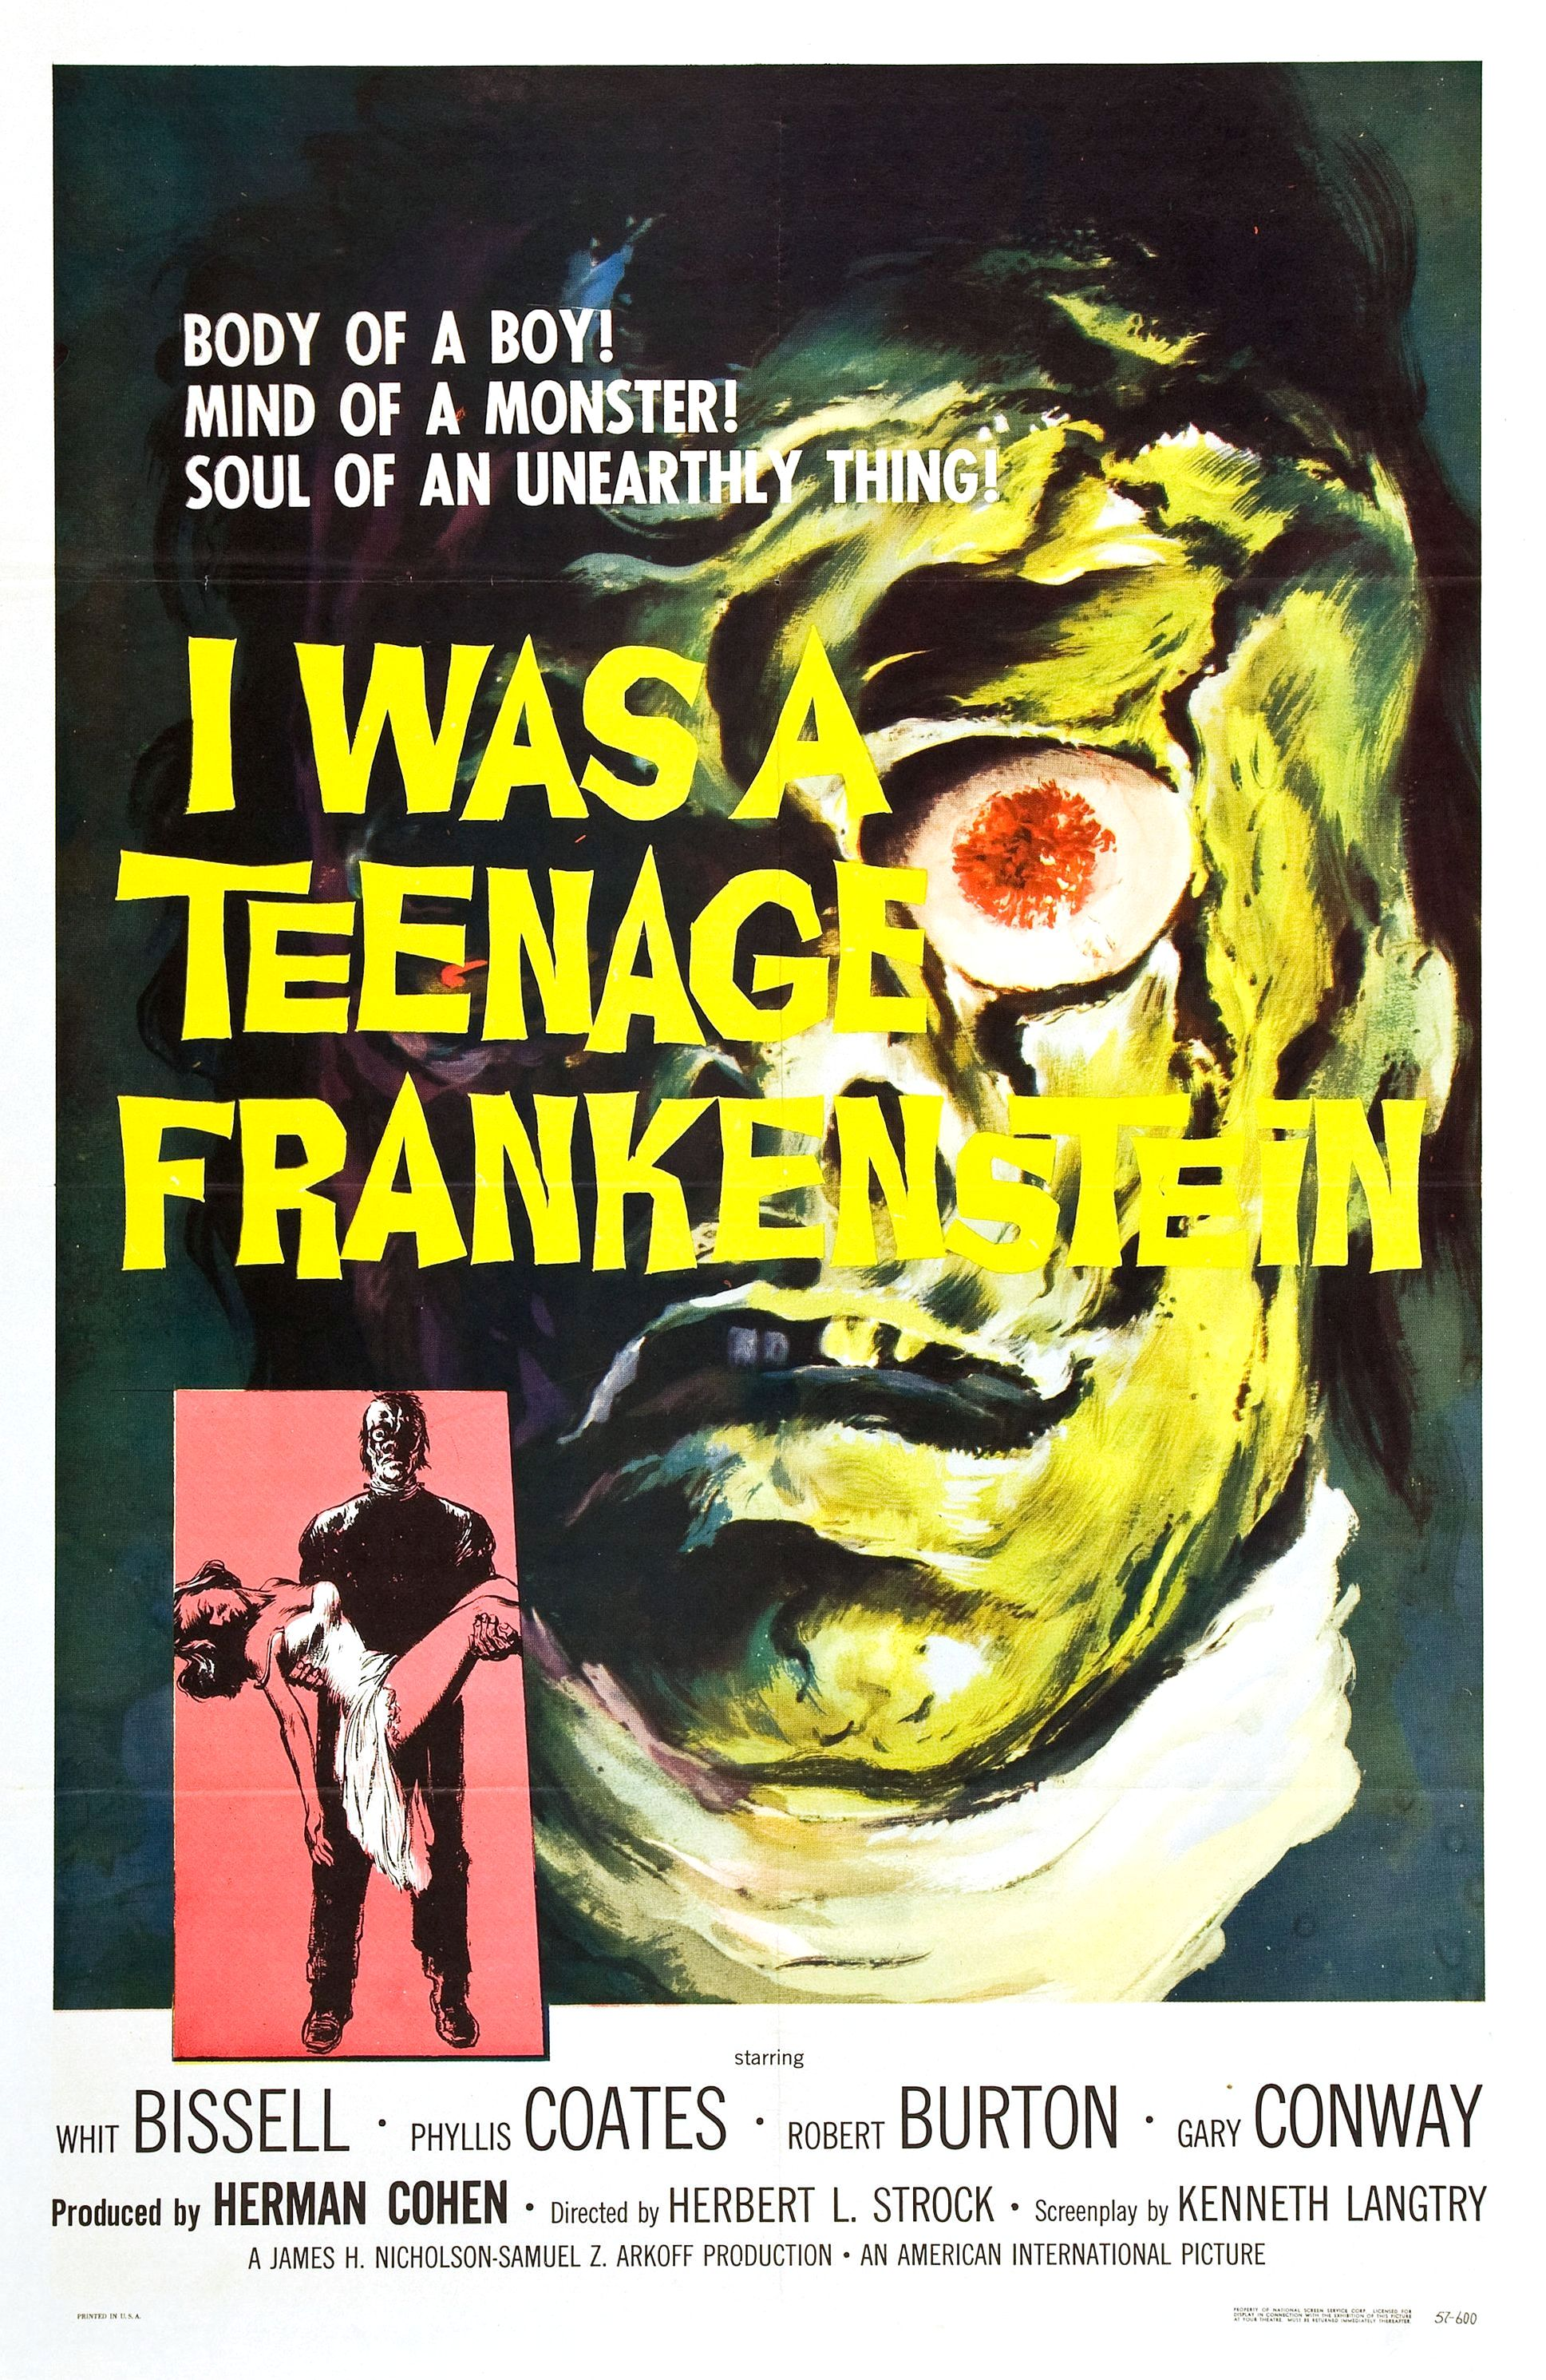 i-was-a-teenage-frankenstein-1kite44i-was-a-teenage-frankenstein-1i-was-a-teenage-frankenstein-24i-was-a-teenage-frankenstein-18i-was-a-teenage-frankenstein-4